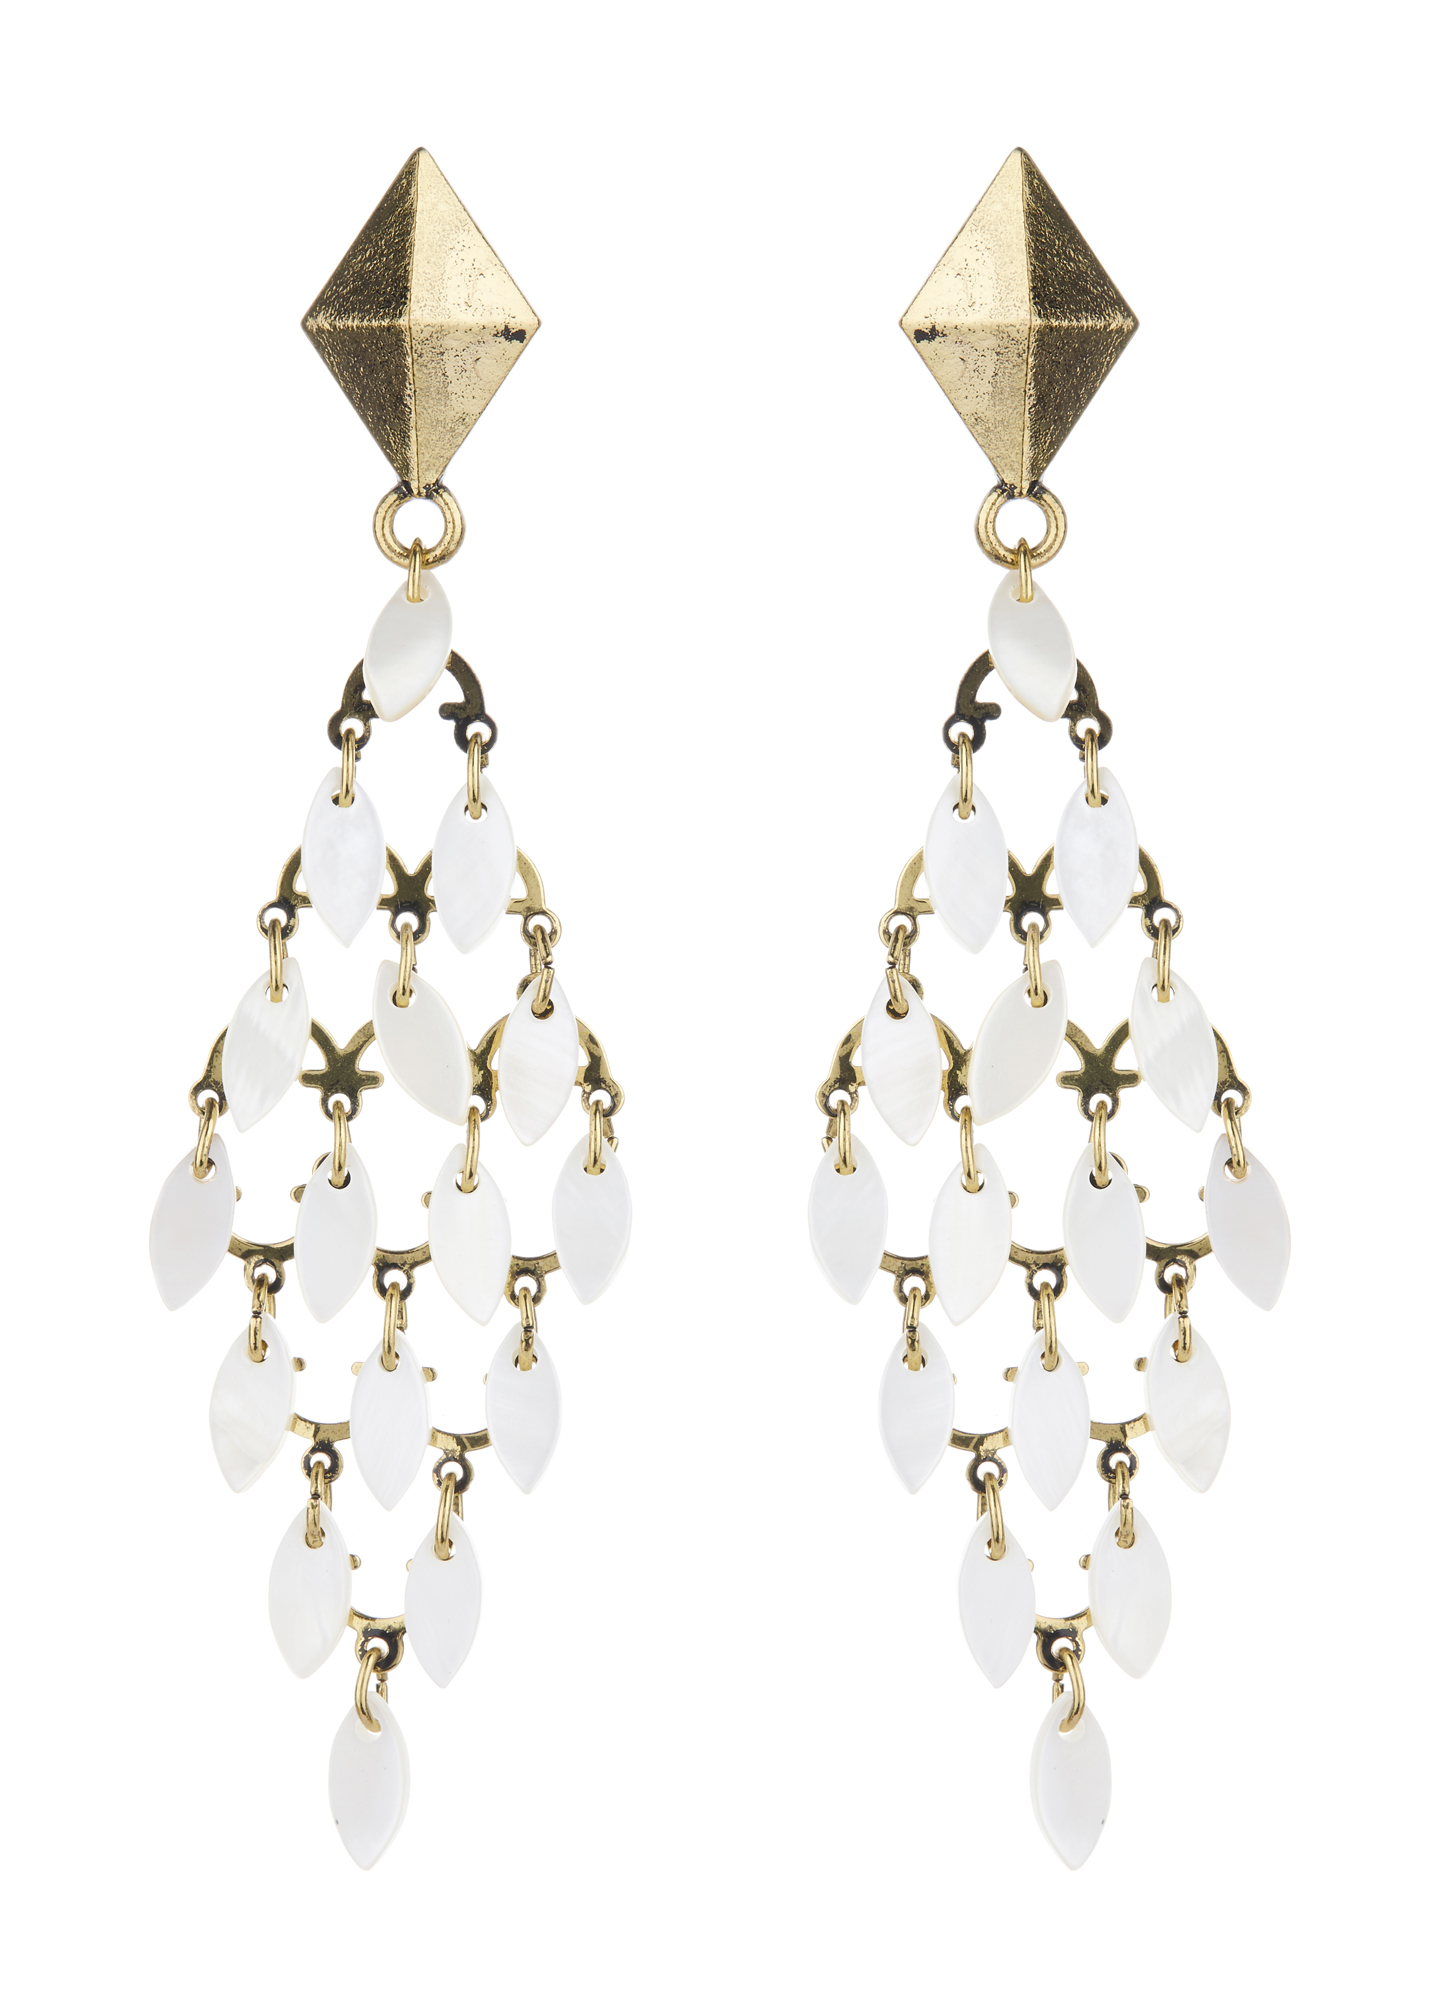 Clip On Earrings - Benita - antique gold chandelier earring with white shell